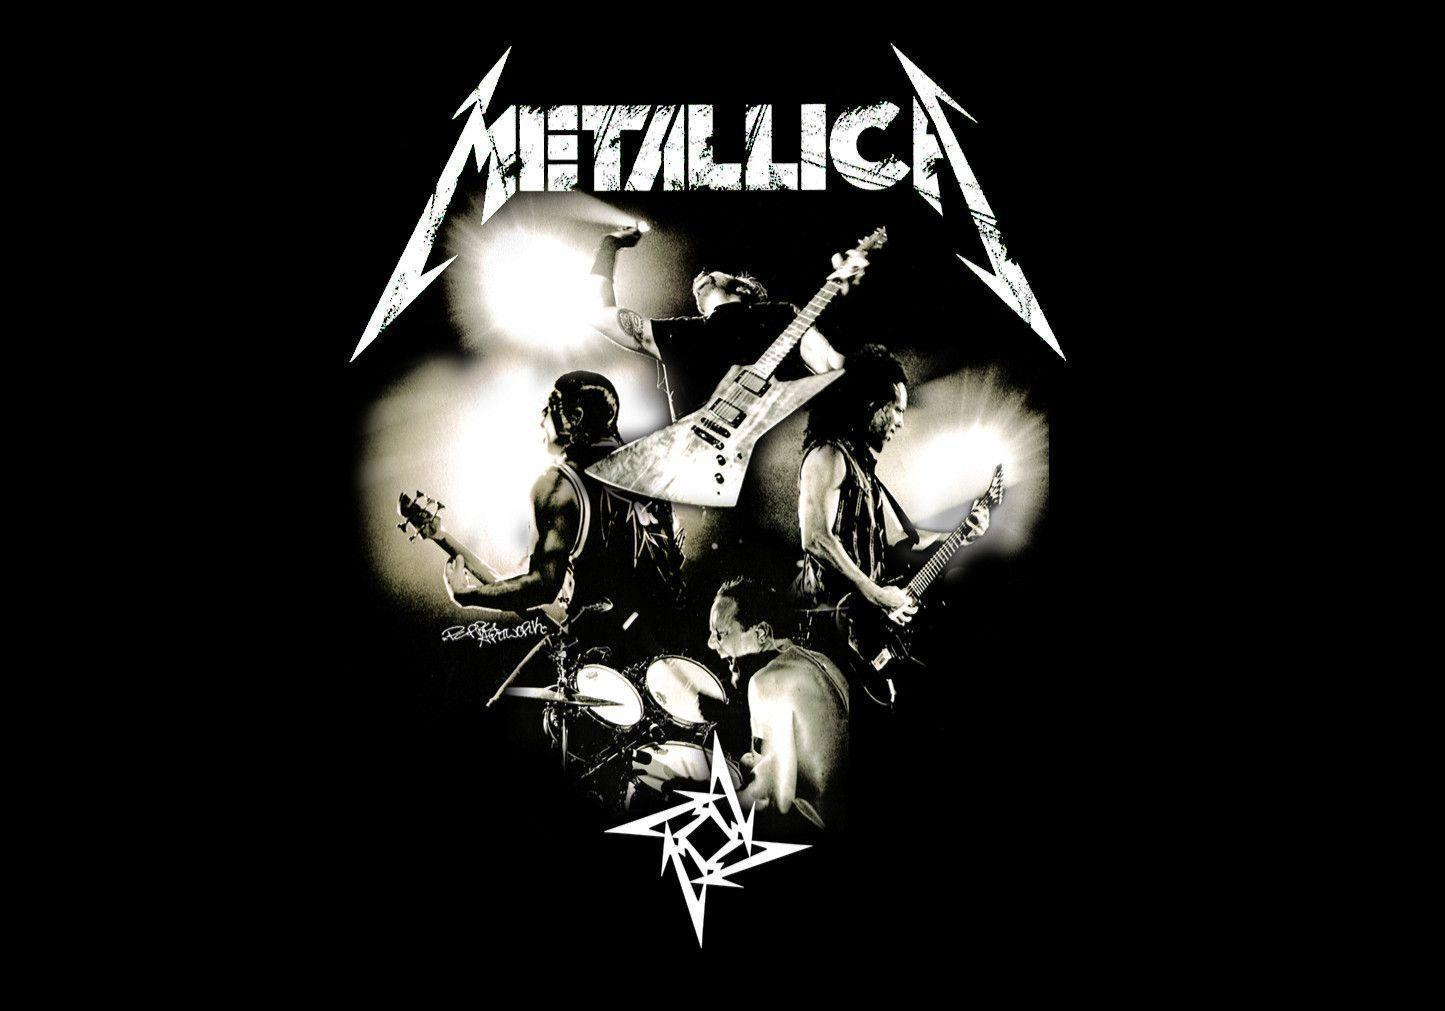 Wallpapers For > Metallica Wallpapers High Resolution